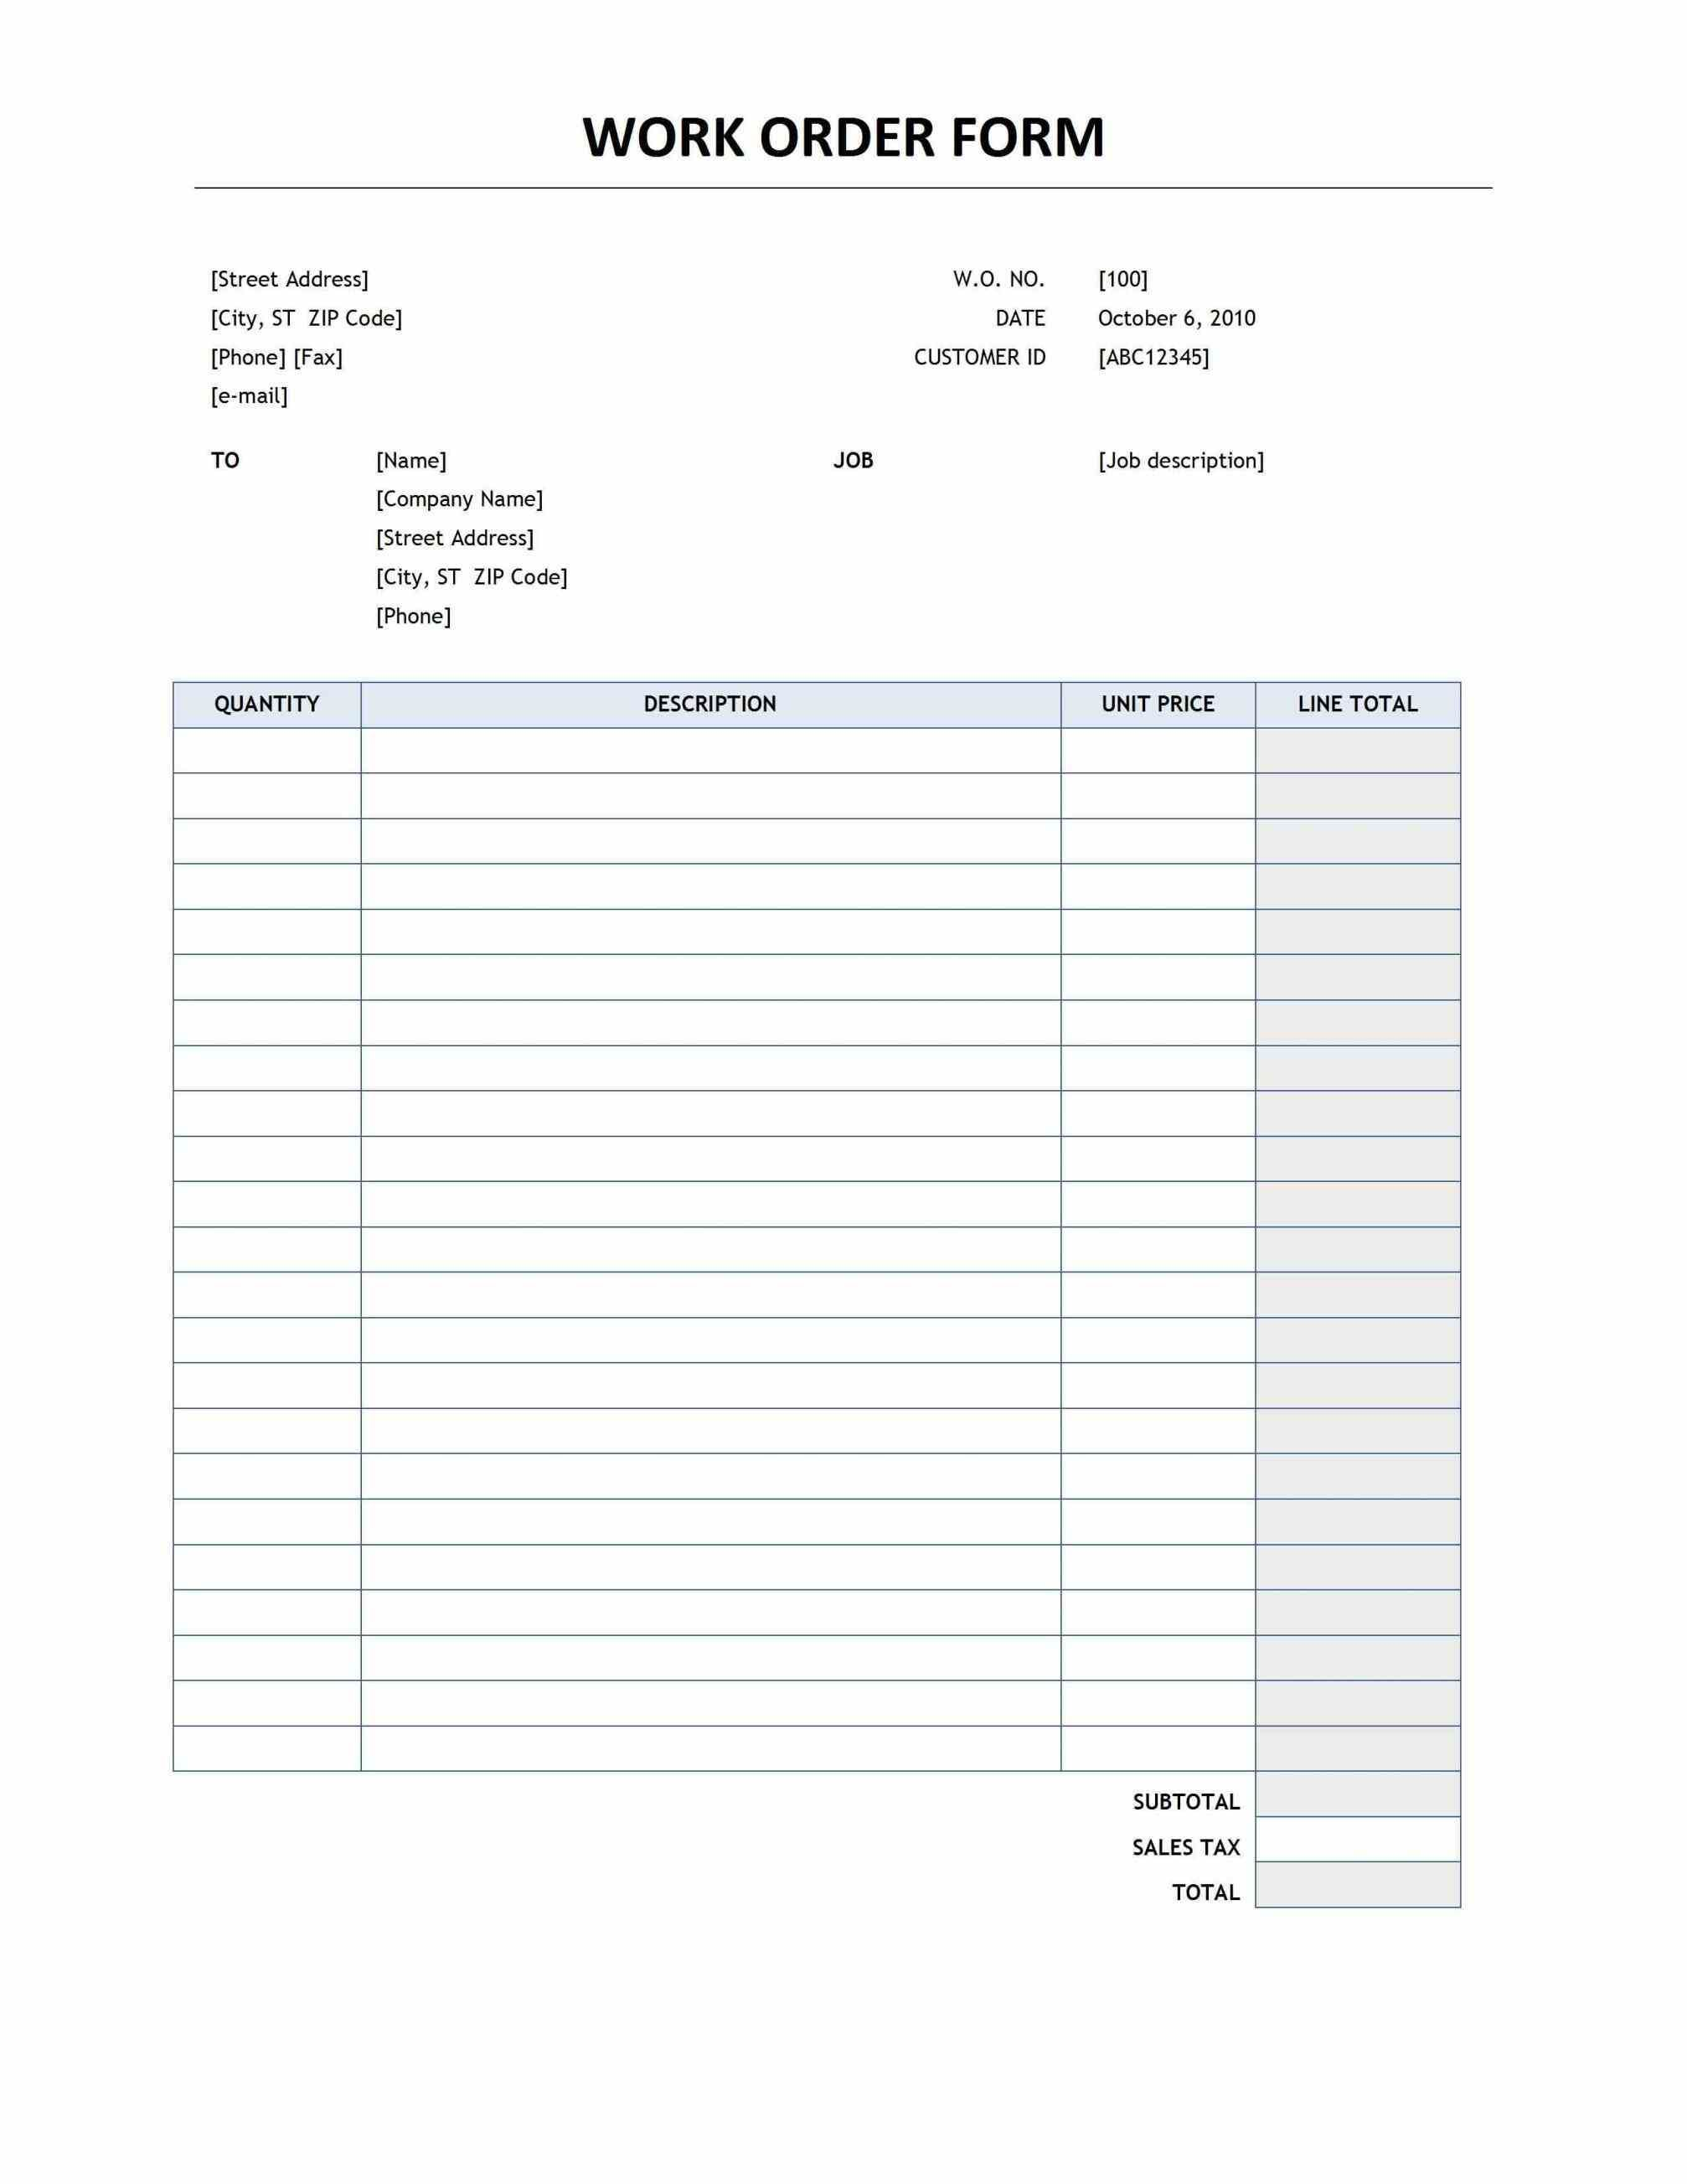 photo relating to Printable Work Order Forms identified as this initiates the obligation of offering information these types of